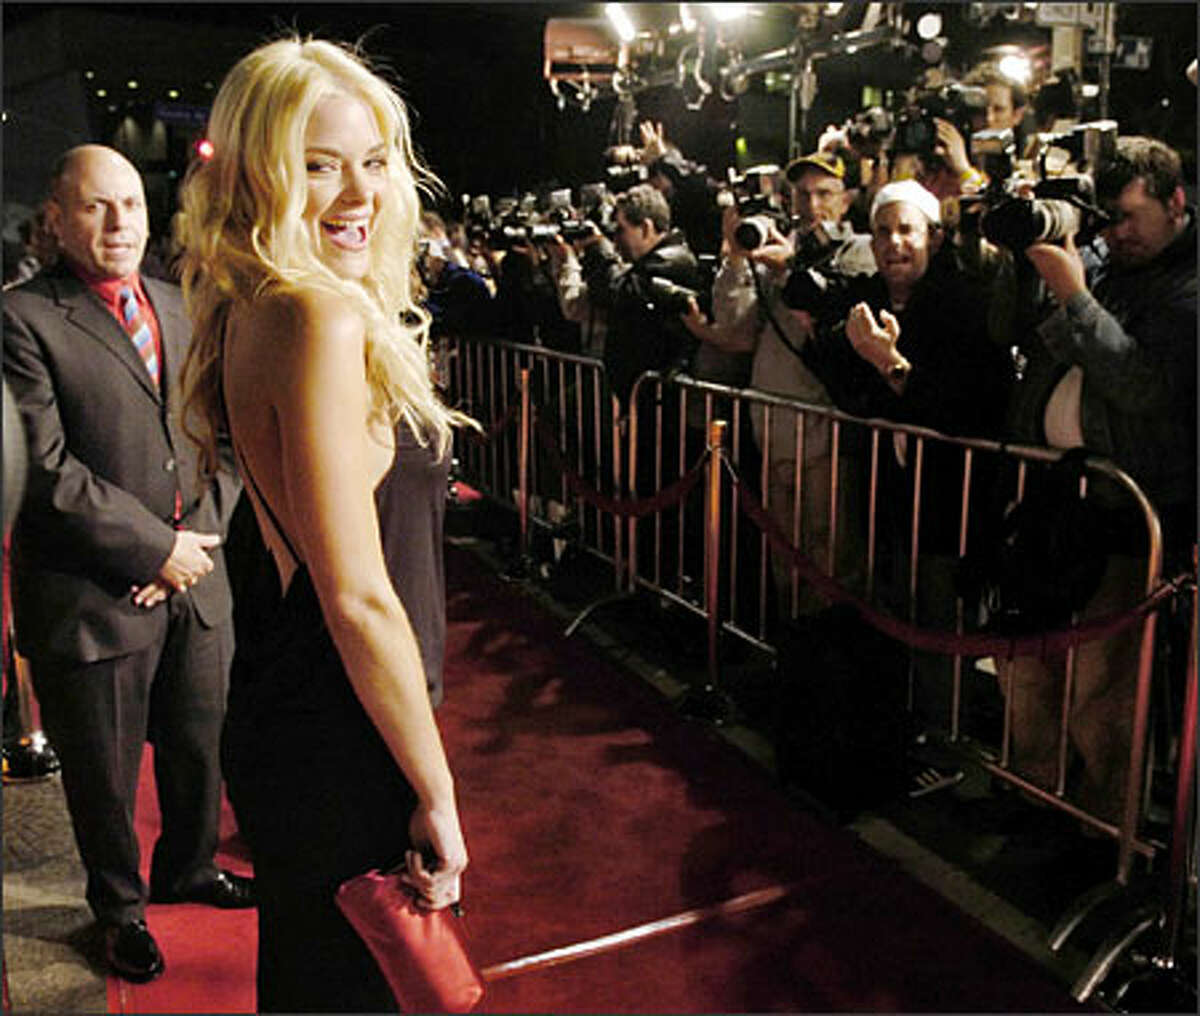 """The """"Sin City"""" premiere in Los Angeles was quite the red carpet scene. Cast member Jaime King was just one of the well-dressed females who gowned up, along with Brittany Murphy, Devon Aoki and Rosario Dawson. Bruce Willis, meanwhile, went for jeans. The film is set for release Friday."""